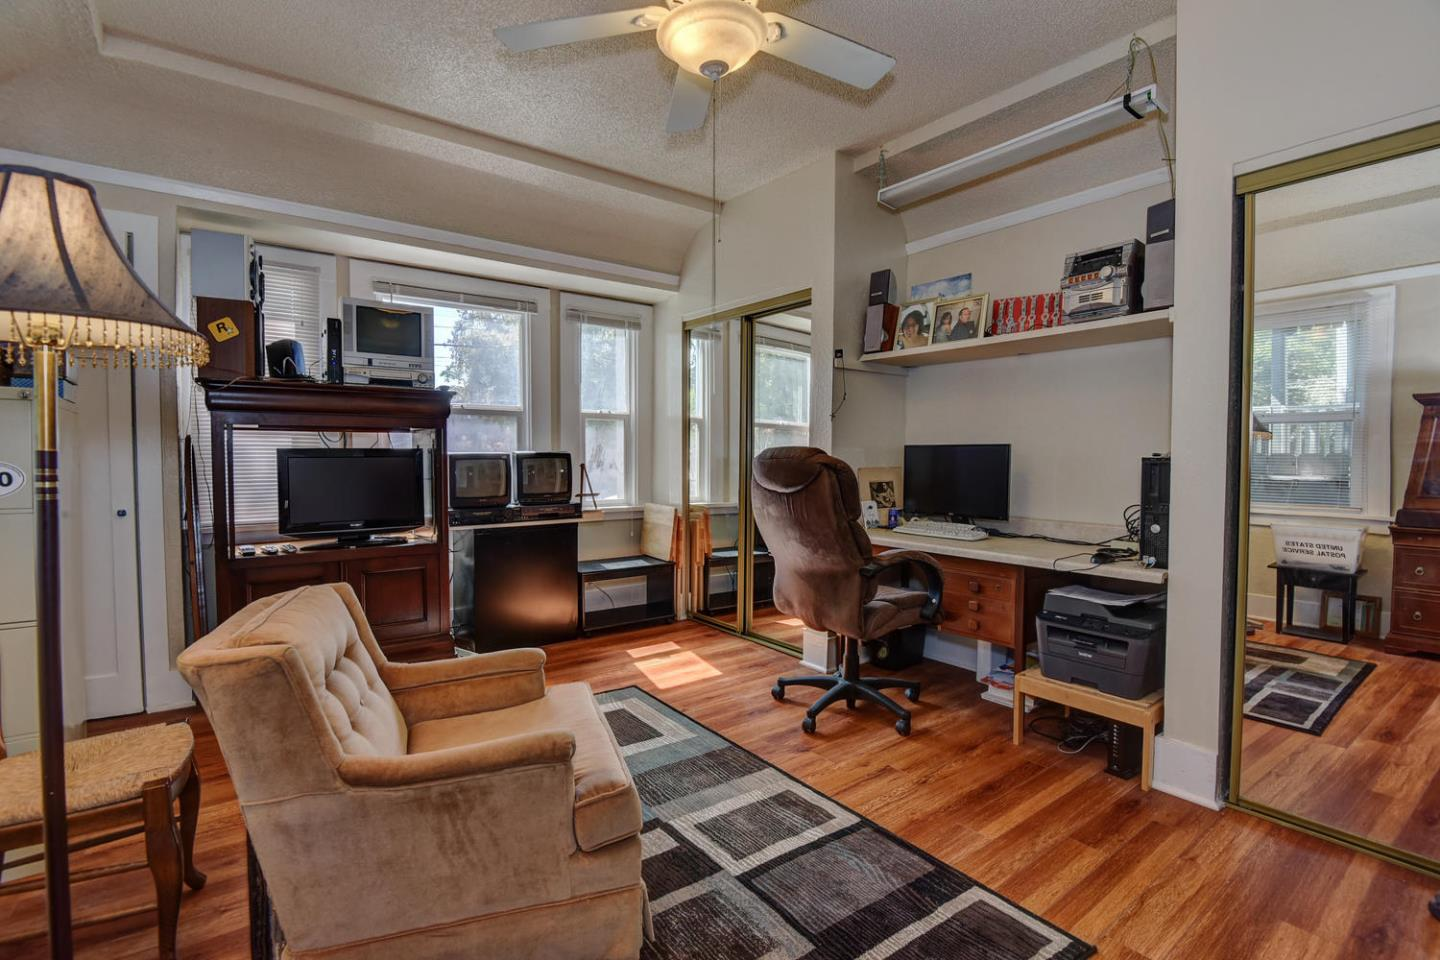 Additional photo for property listing at 70-74 N 10th Street  San Jose, California 95112 United States